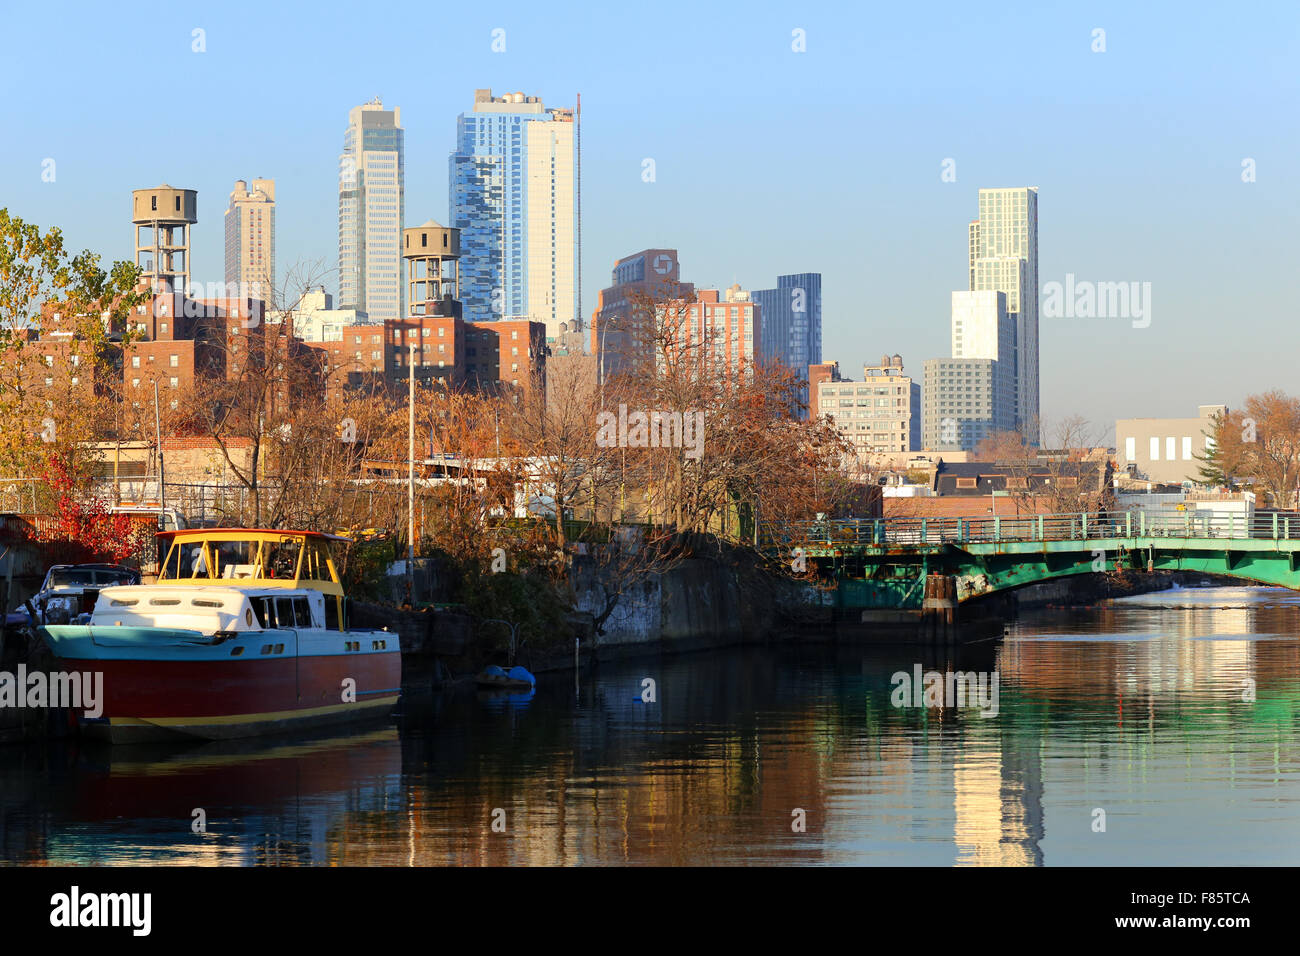 The Gowanus Canal, and the New Brooklyn Skyline - Stock Image